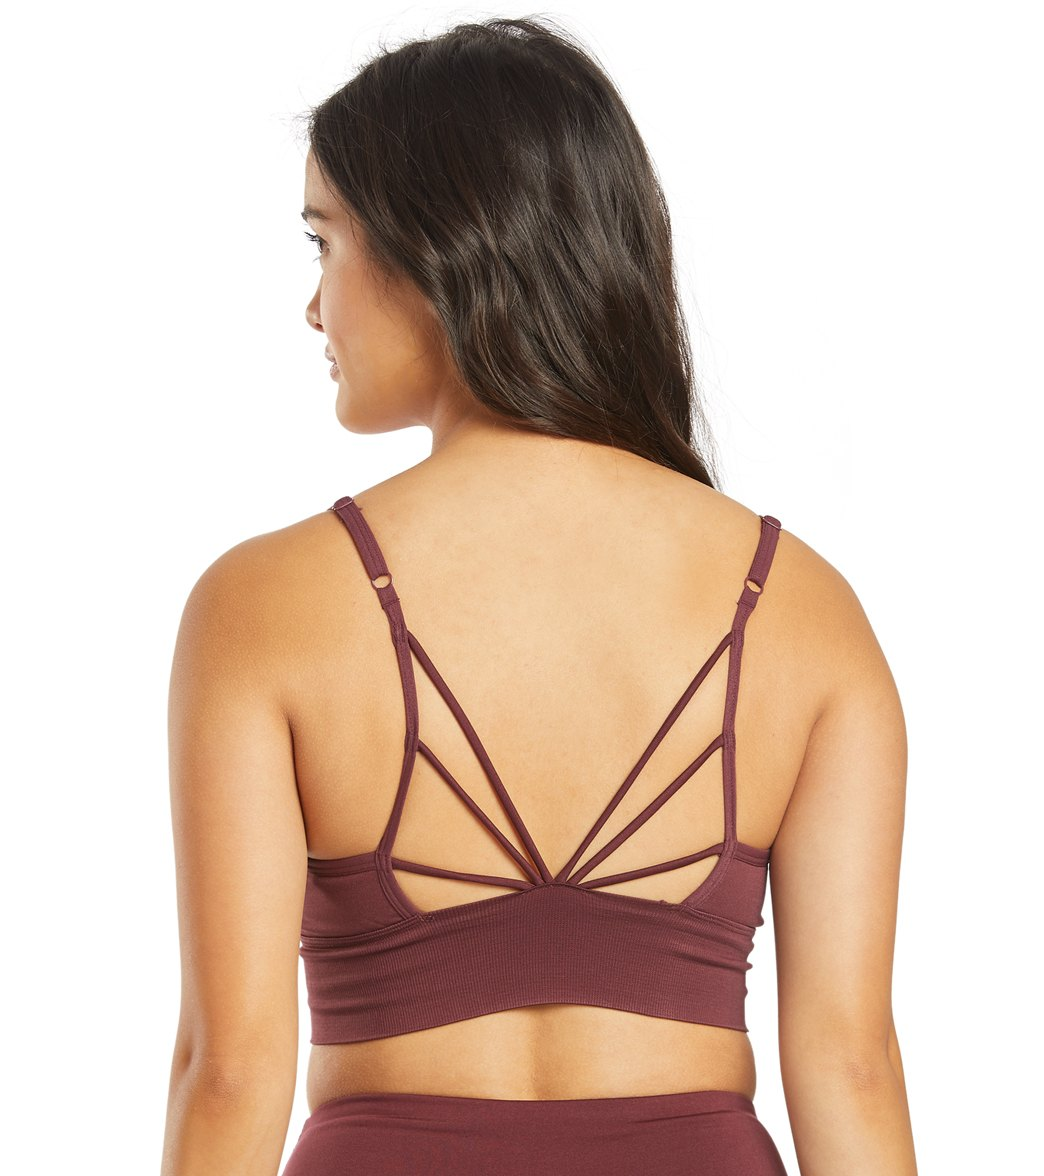 The seamless fabric of the Marika Jillian Seamless Yoga Sports Bra makes you feel comfortable throughout your workouts. FeaturesSeamless jacquard pattern Removable cups Low impact Adjustable back straps Dry Wik FinishDetailsFabric: Nylon/Spandex BlendColor: Black, Maroon, GreenStyle Features: Strappy backFit: TightCups: Removable cupsSupport: LowAdjustable: YesCountry of Origin: Imported About Marika: Founded in 1982, Marika is the flagship brand of Rock Fit, a family owned and operated company.